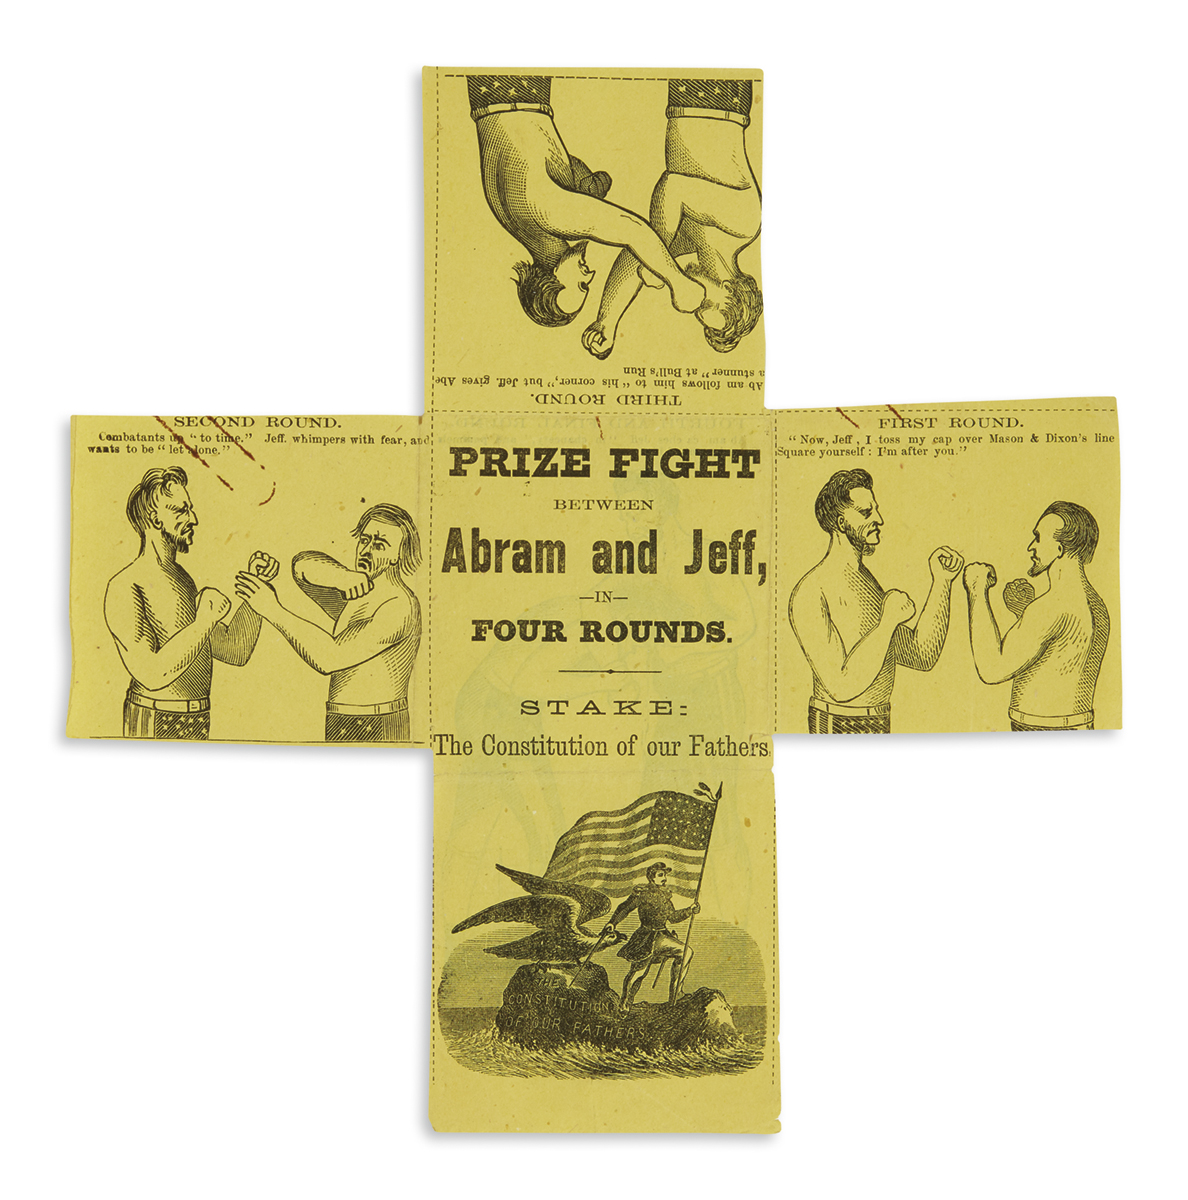 (PRINTS--CARTOONS)-Prize-Fight-Between-Abram-and-Jeff-in-Fou